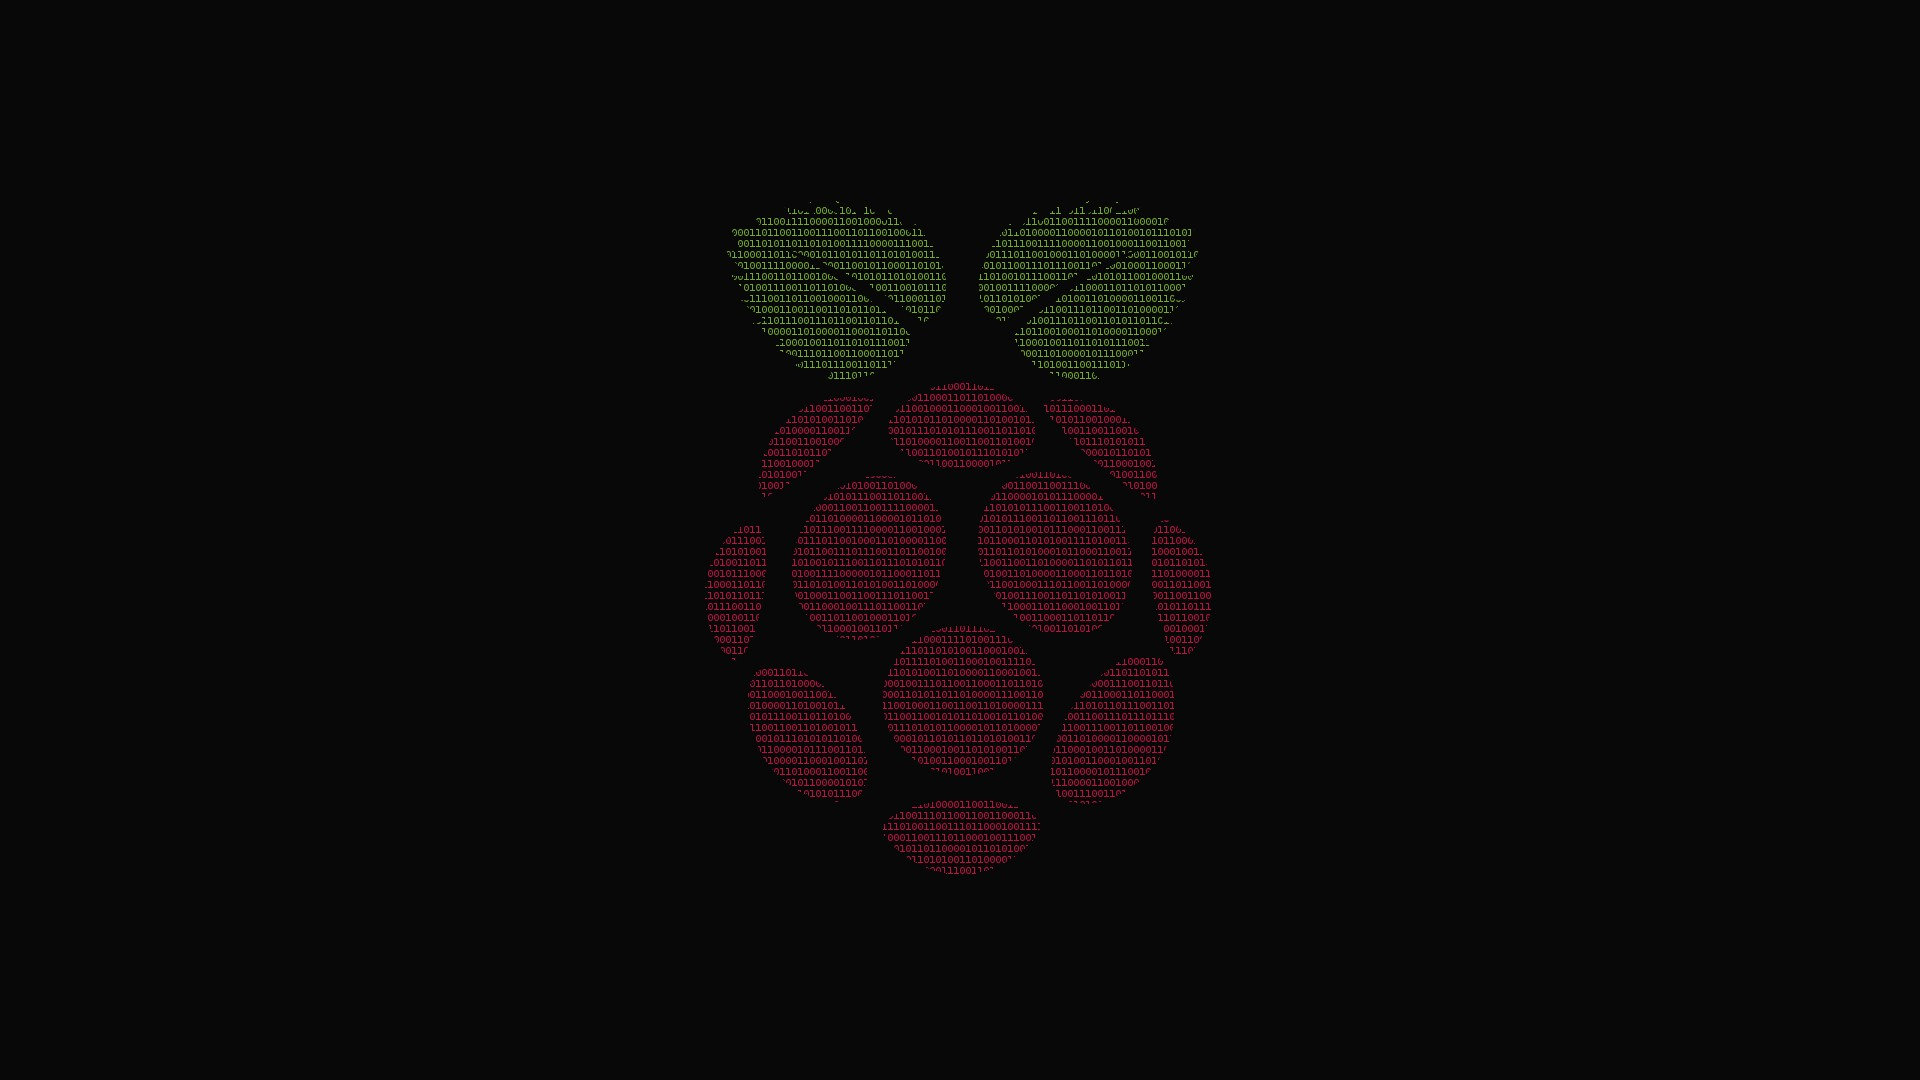 Raspberry Pi Wallpaper Hd 1366x768 Raspberry Pi Computer Logo 1366x768 Resolution Hd